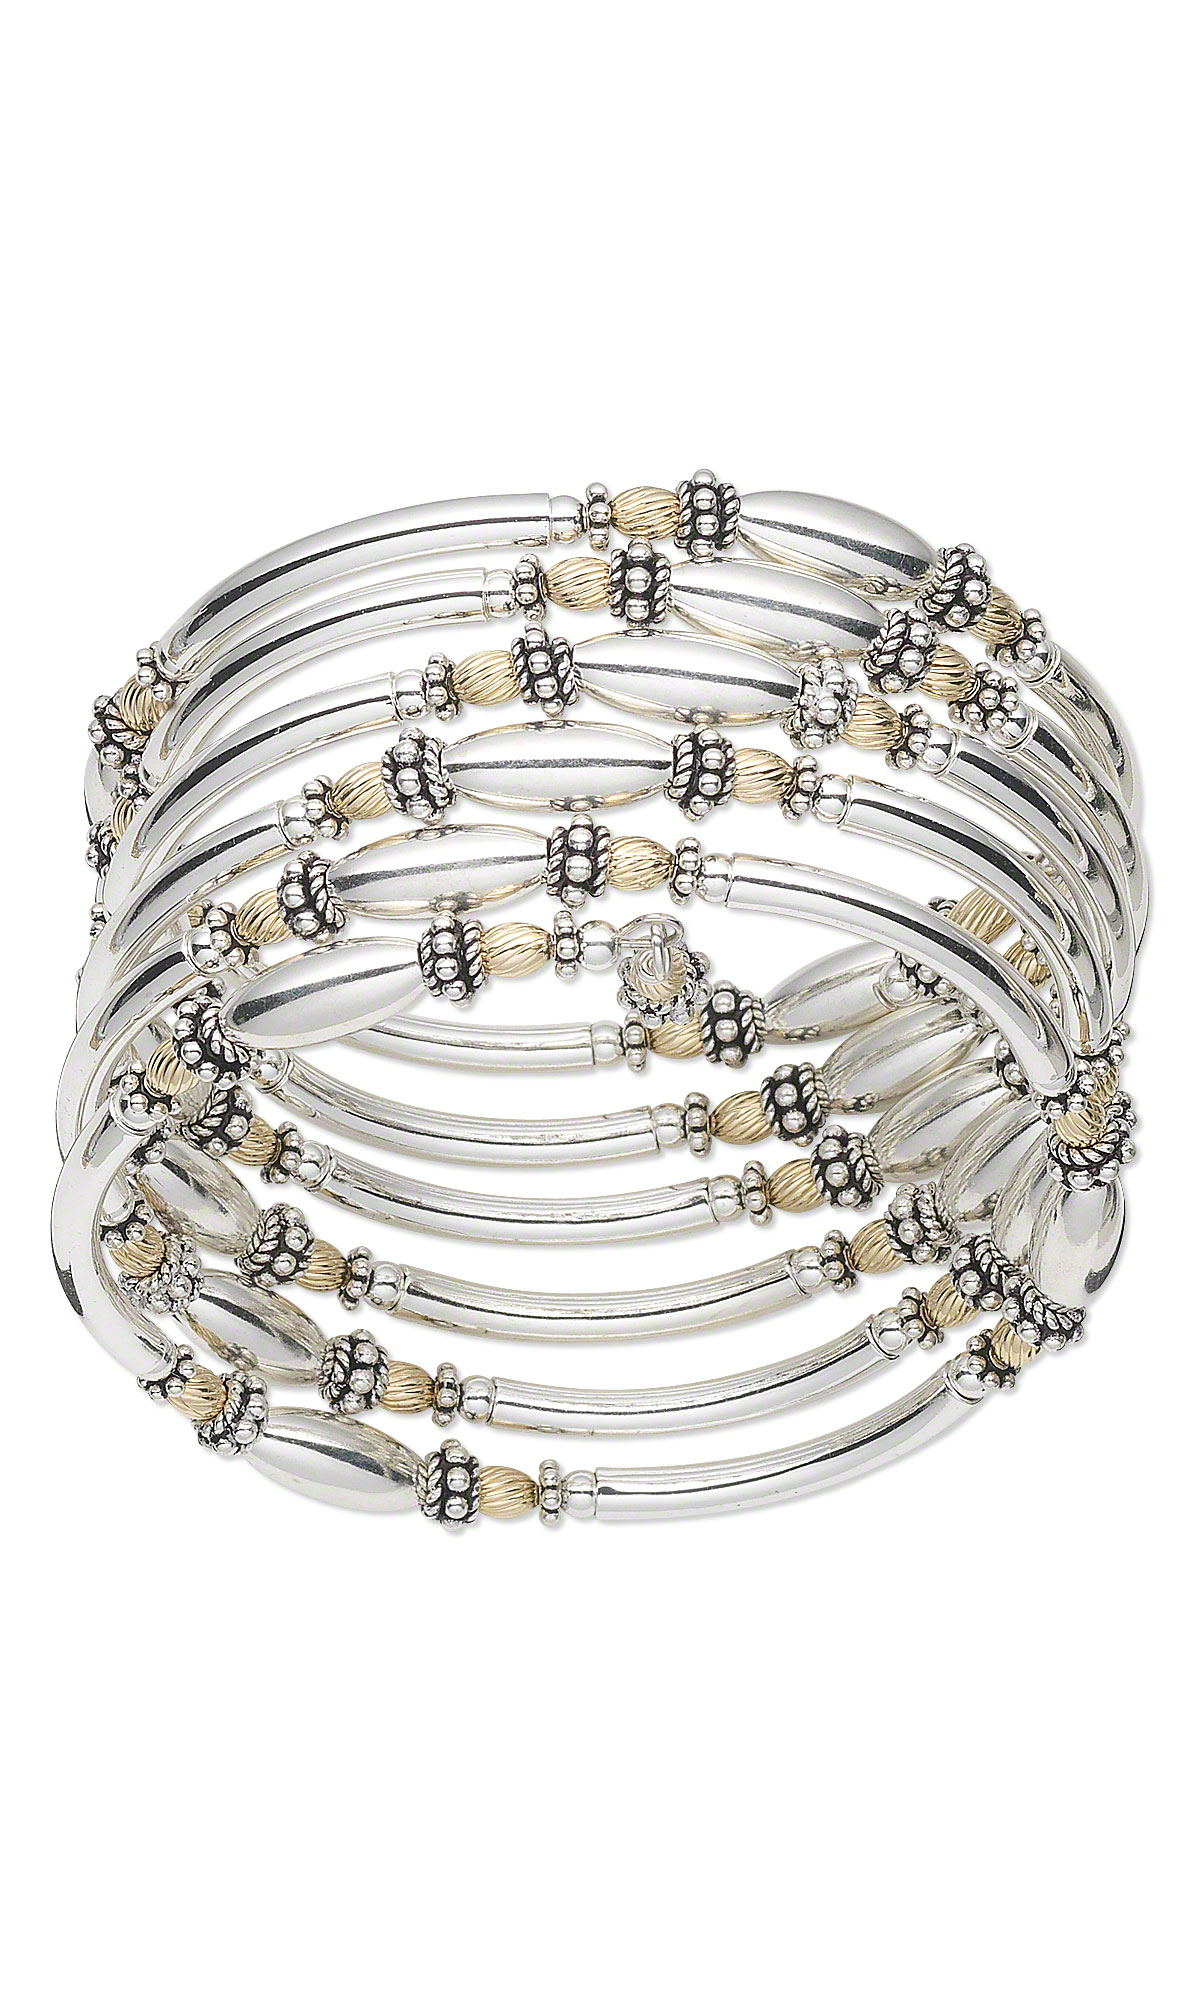 Jewelry Design - Bracelet with Sterling Silver Beads and Memory ...